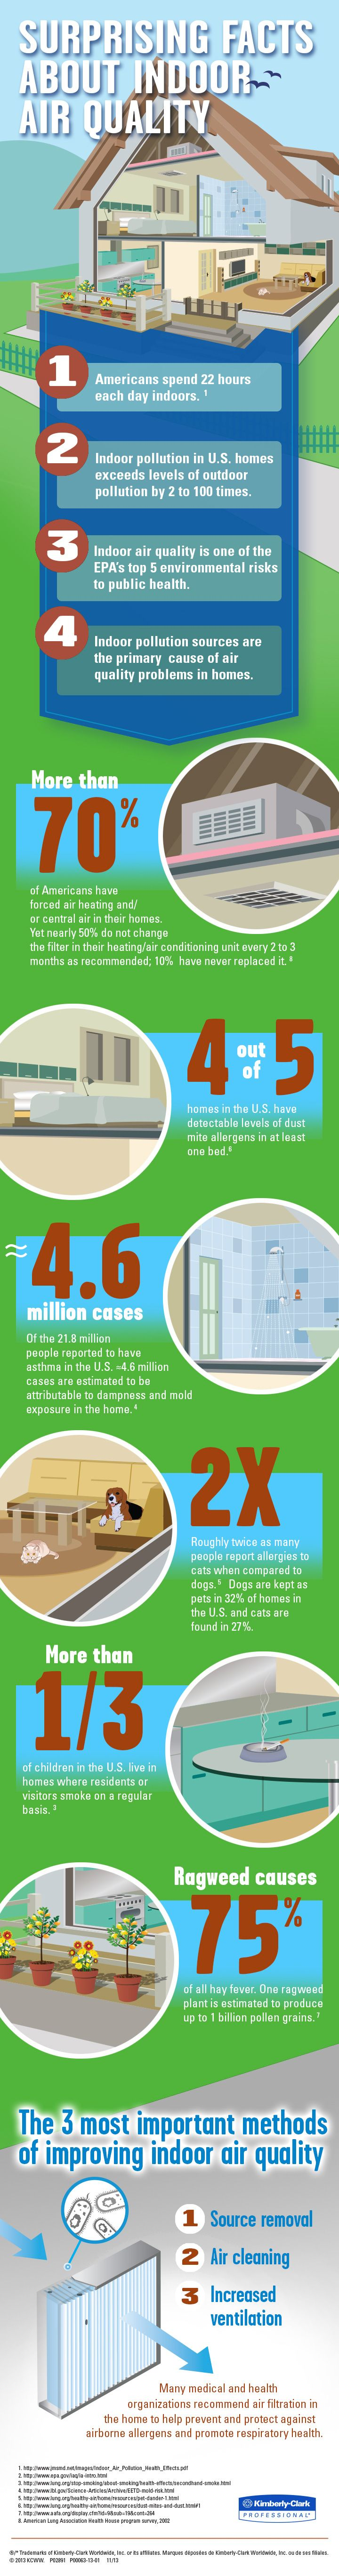 Take a look at these surprising facts about indoor air quality!   Pass One Hour Heating & Air Conditioning   (618) 997-6471   www.passonehour.com